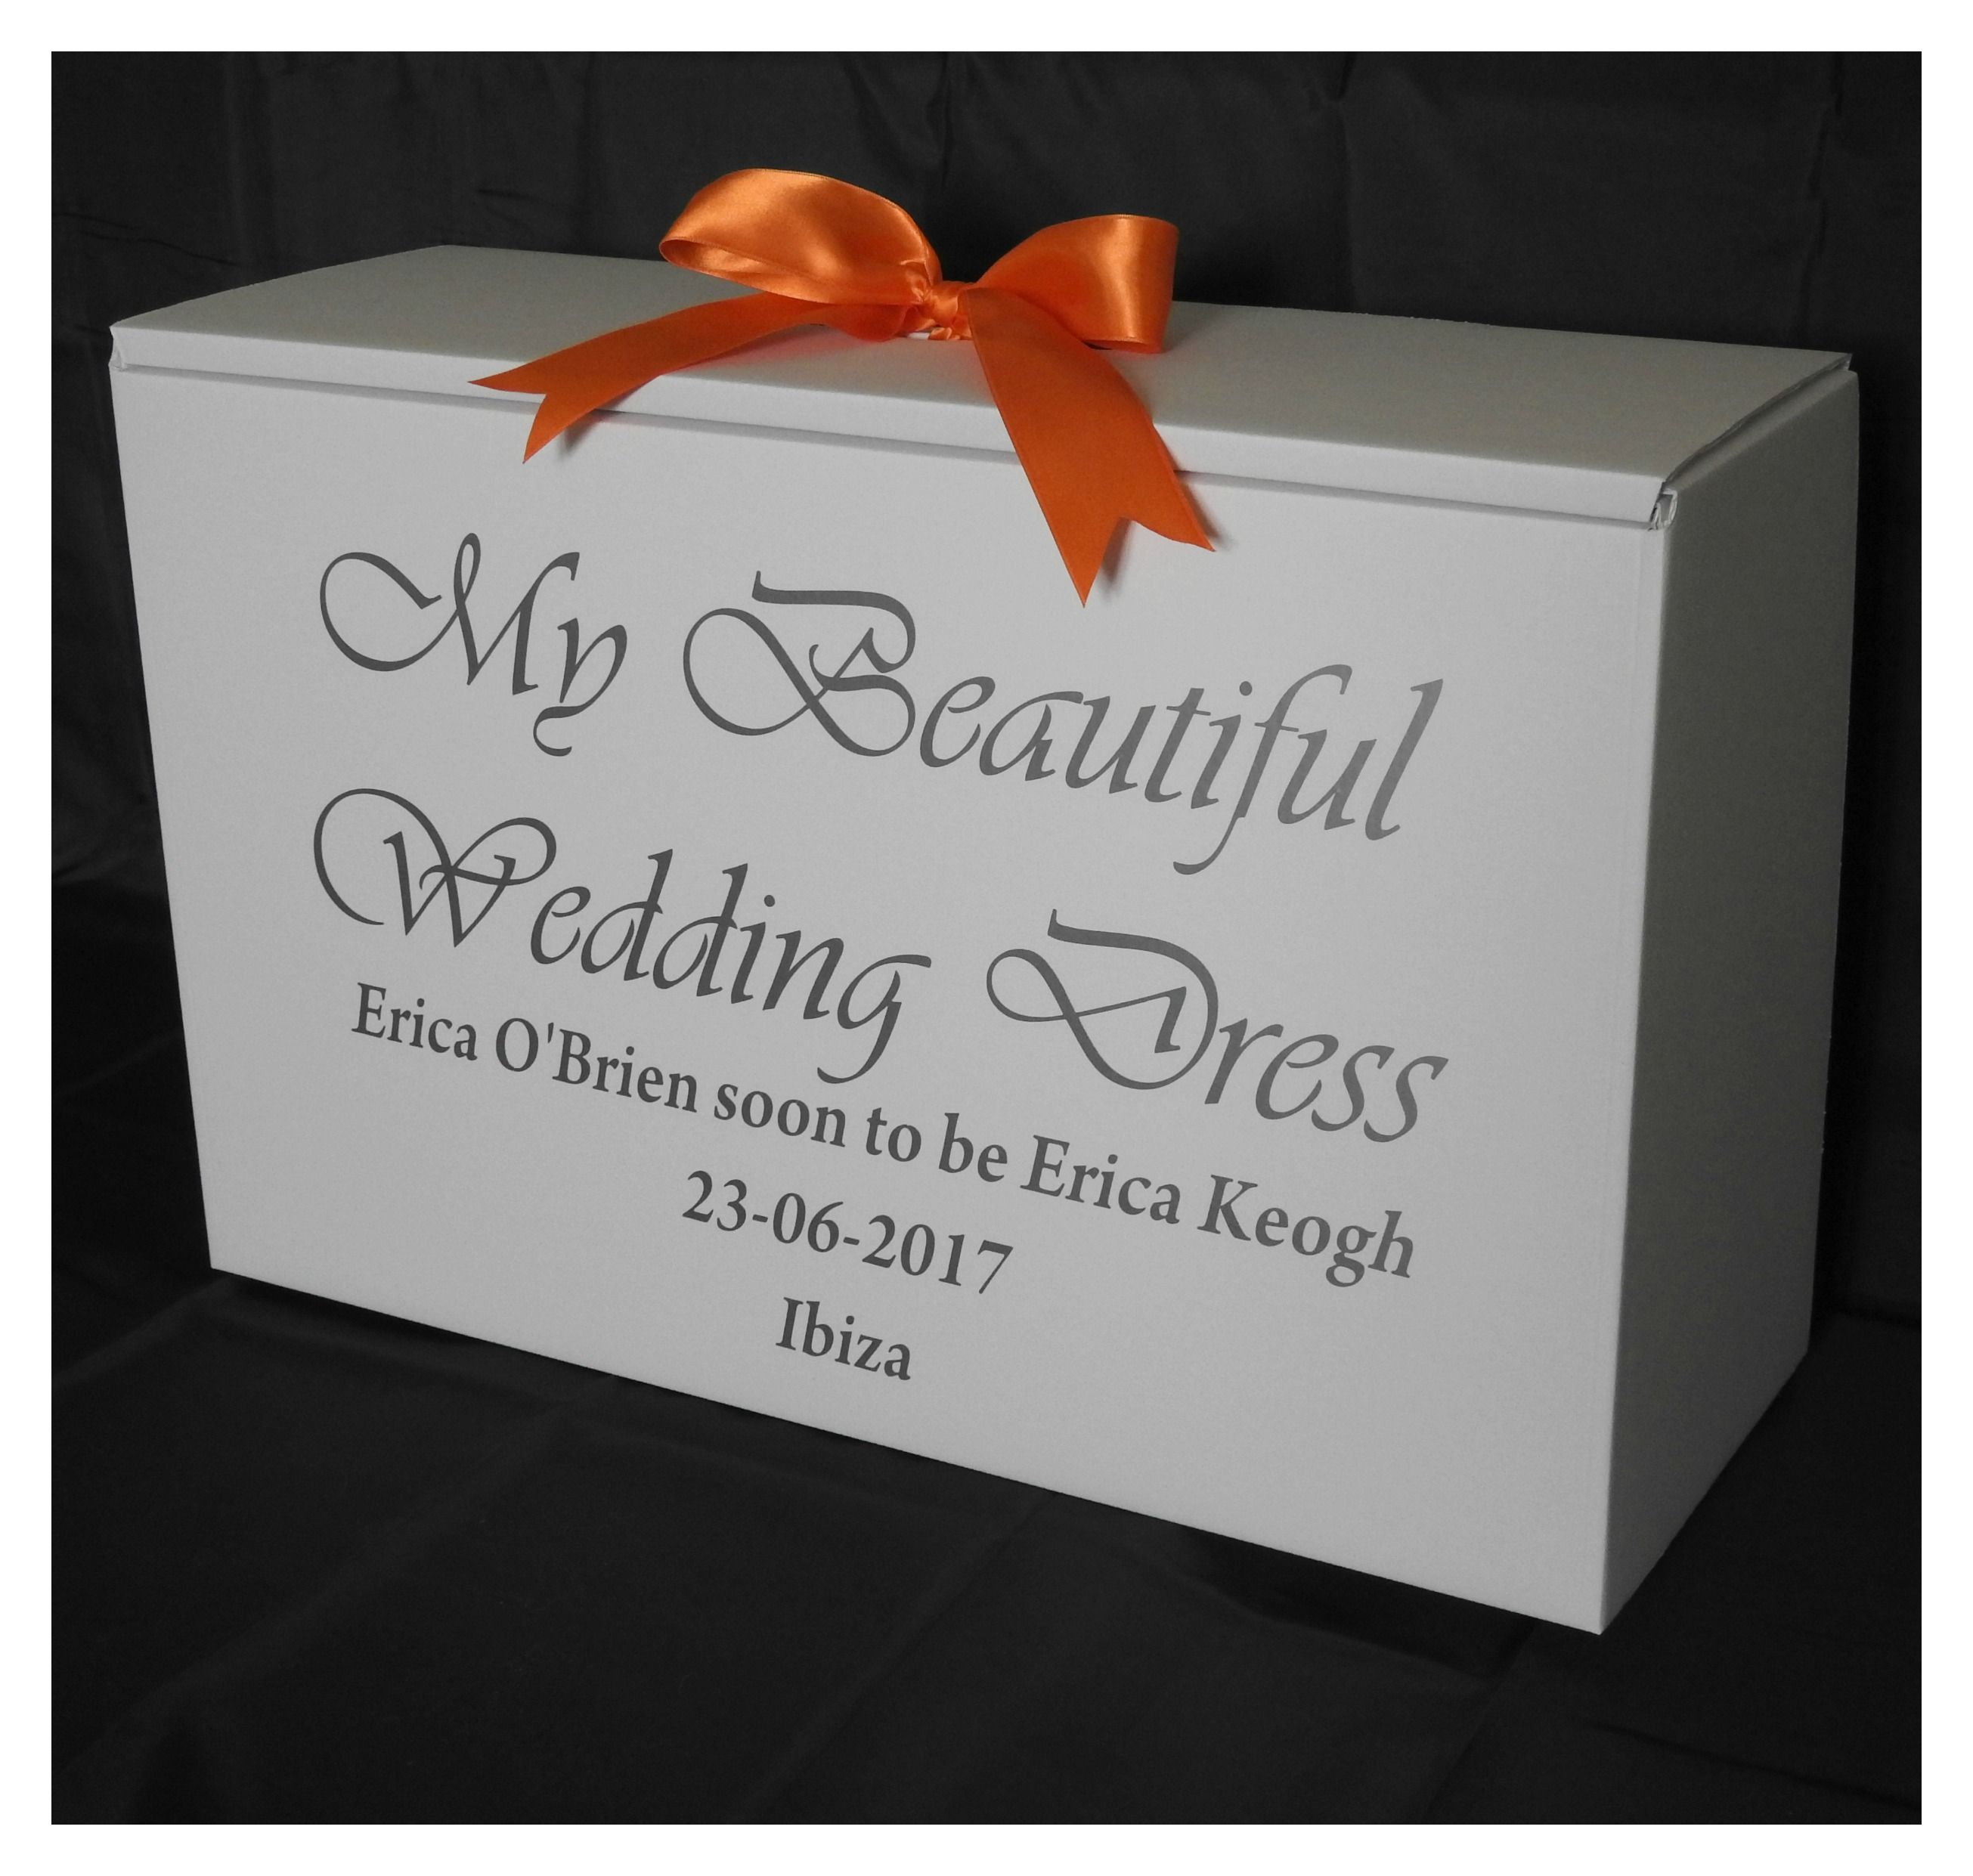 Wedding Dress Travel Box Flying With Your You Need One Of Our Personalised Bo To Take On The Plane As Hand Luggage